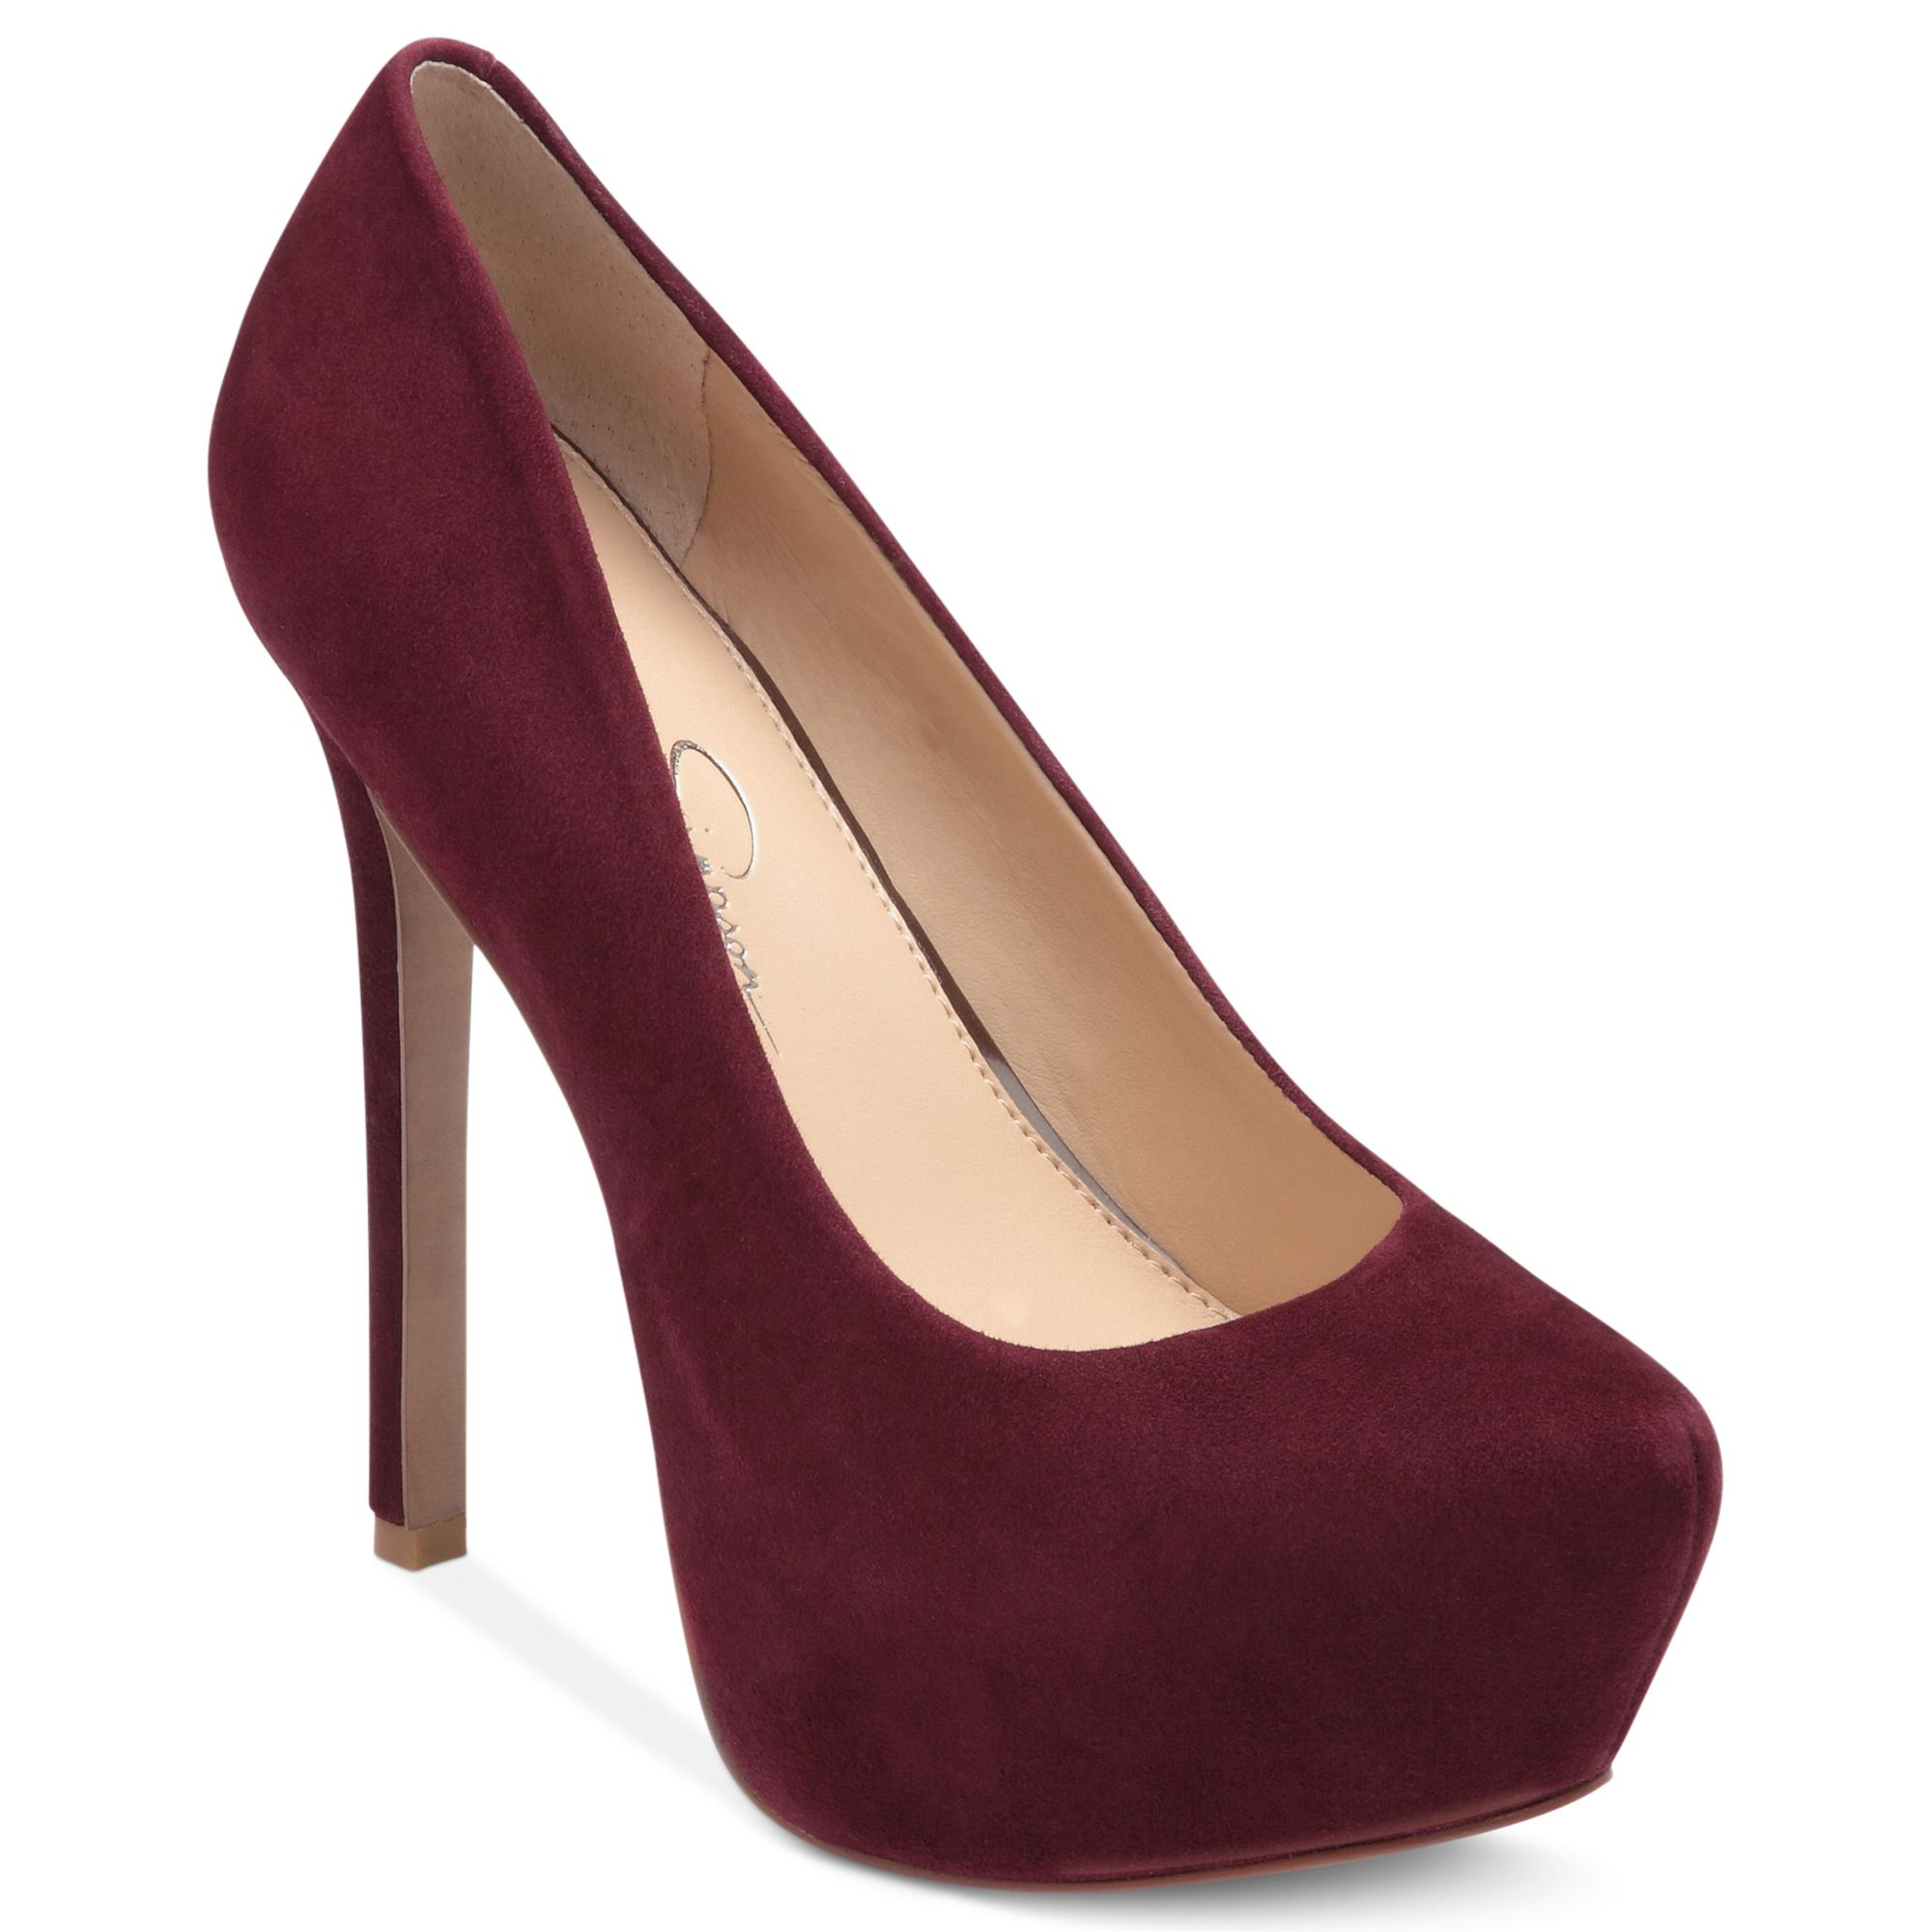 Jessica Simpson Red Platform Shoes